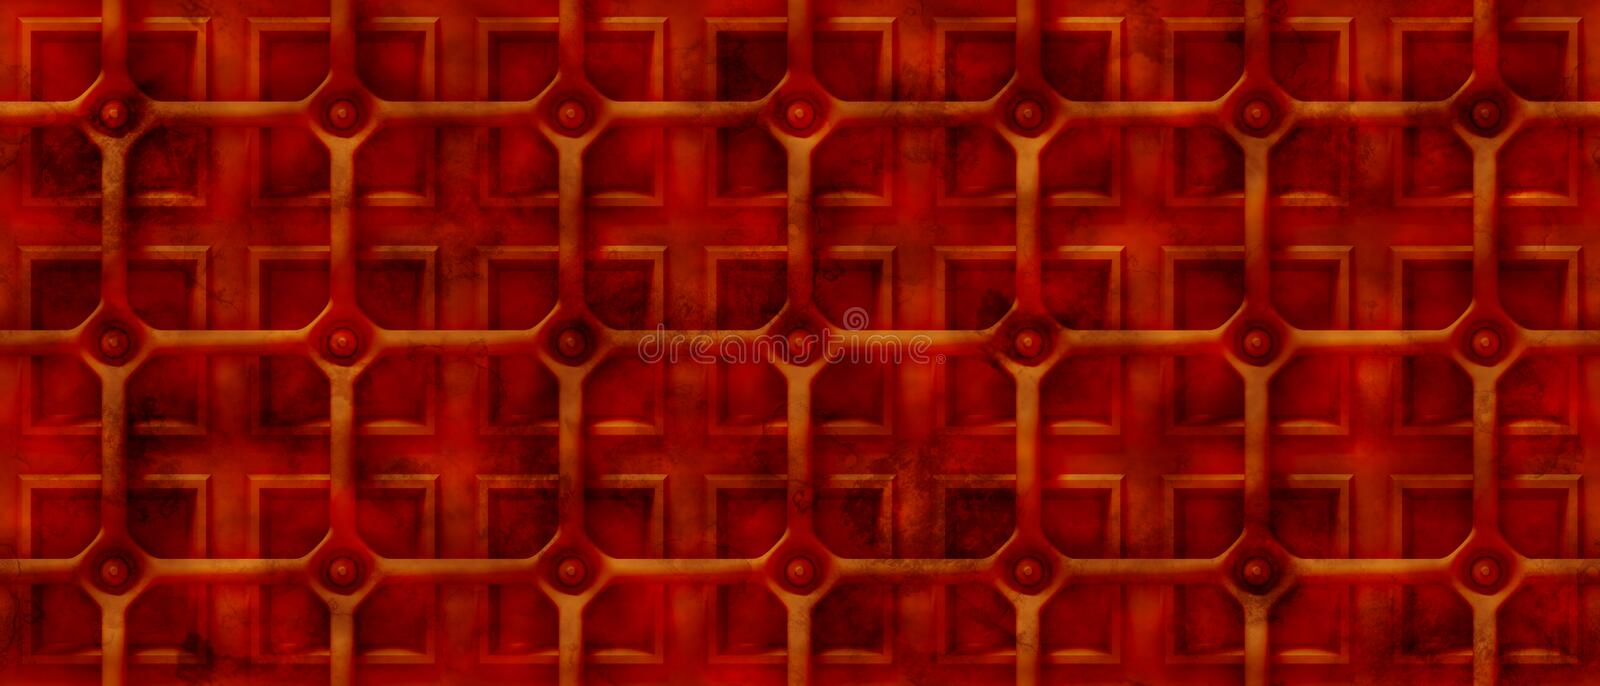 Rusty 3d steampunk background with a grid over square shapes (seamless). Endless rusty tech background with round pipes over a surface with square shapes royalty free illustration